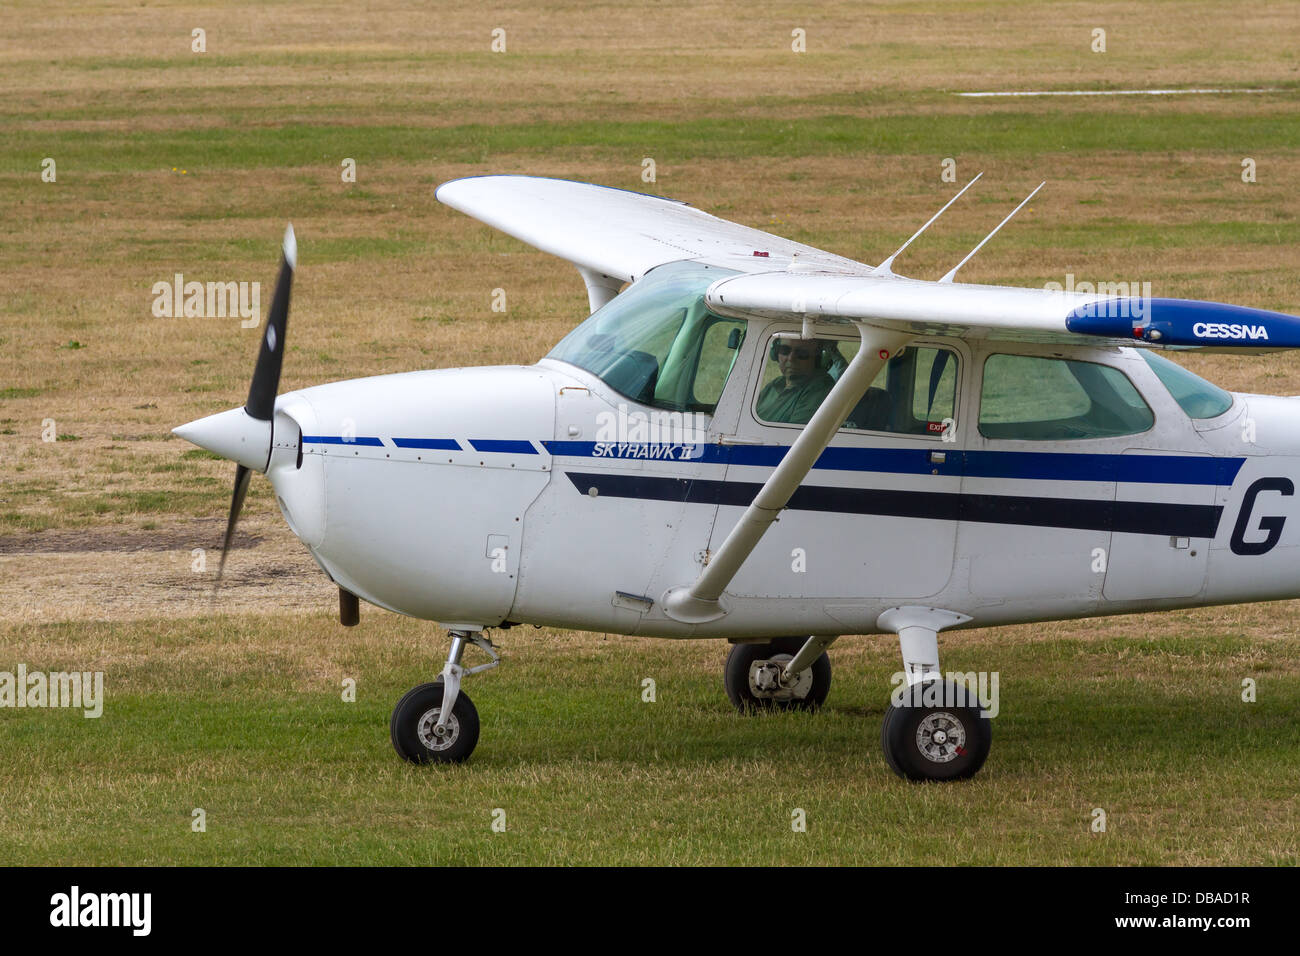 Cessna Light Aircraft taxiing on Airfield at City Airport formerly Barton Aerodrome - Stock Image